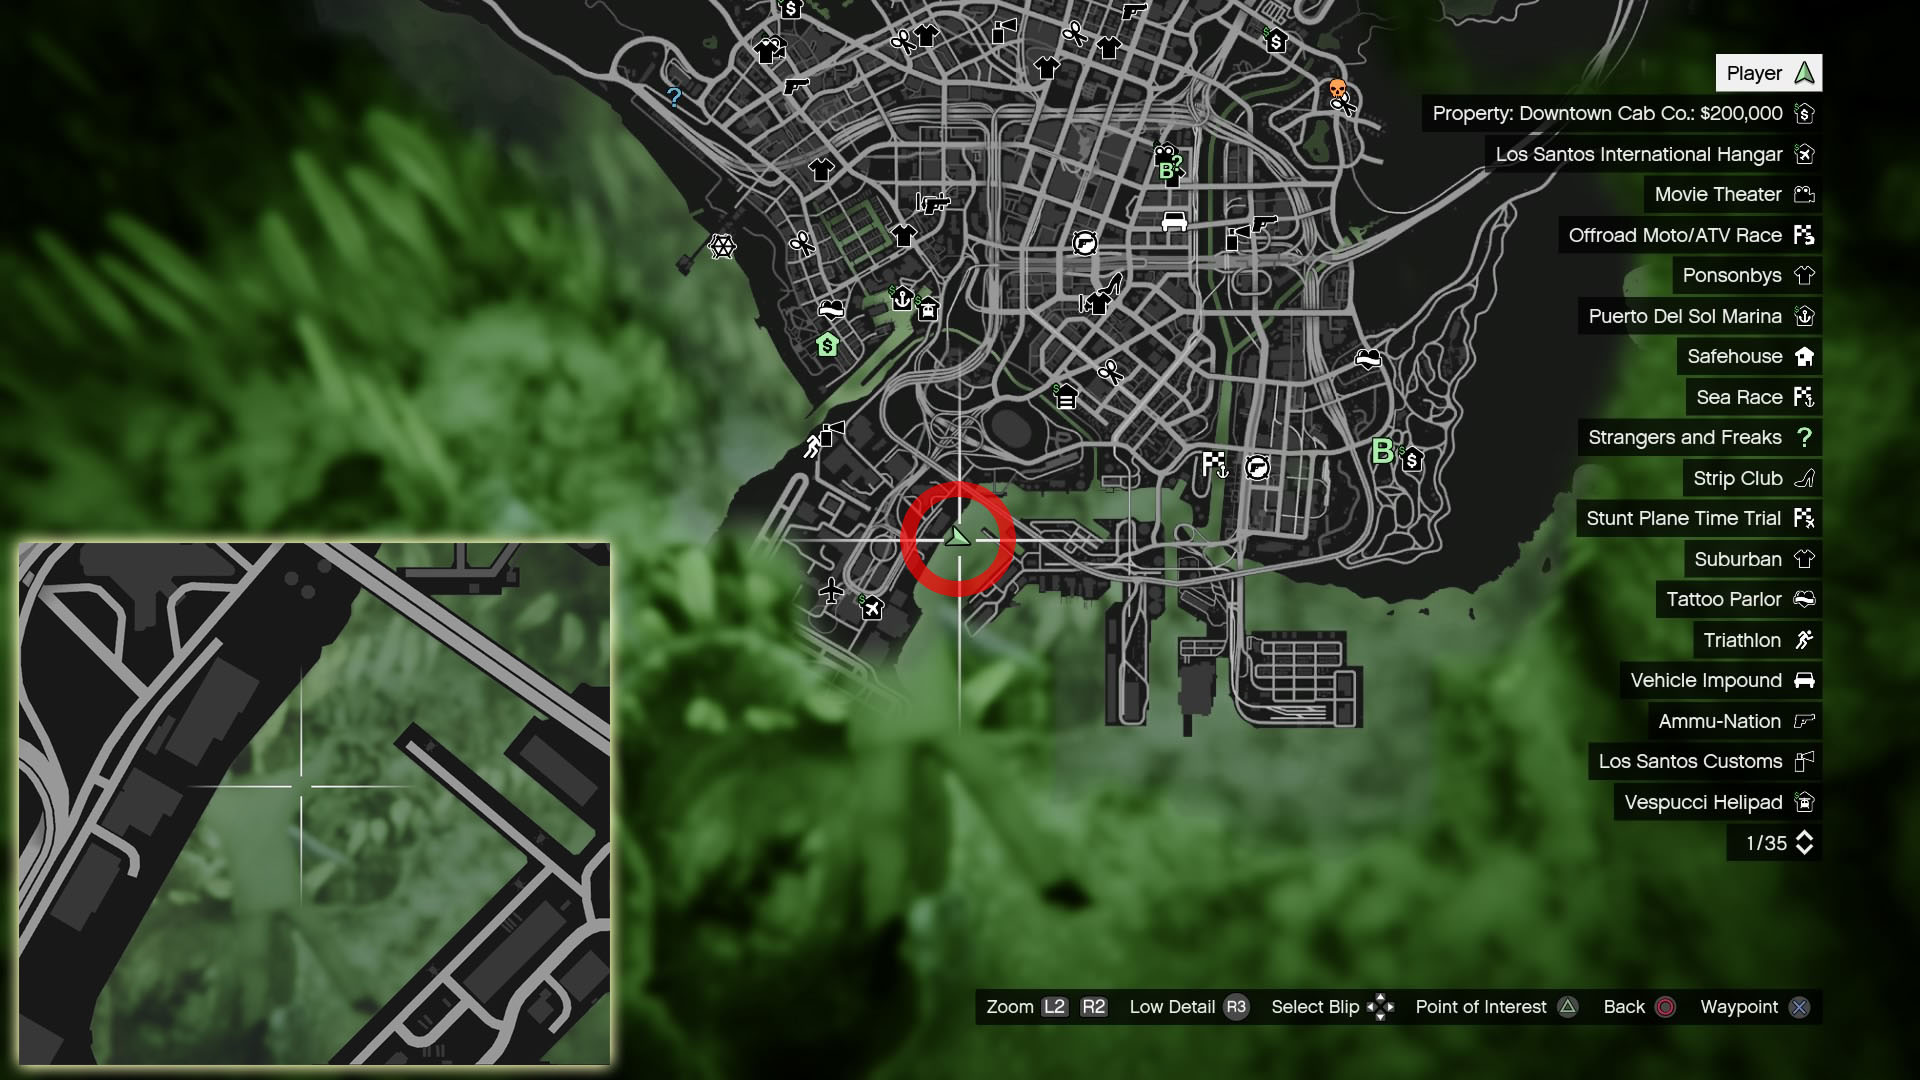 plant location Hidden across the map in gta 5 map are a number of peyote plant collectibles,  which when consumed send you through a hallucinatory trip.